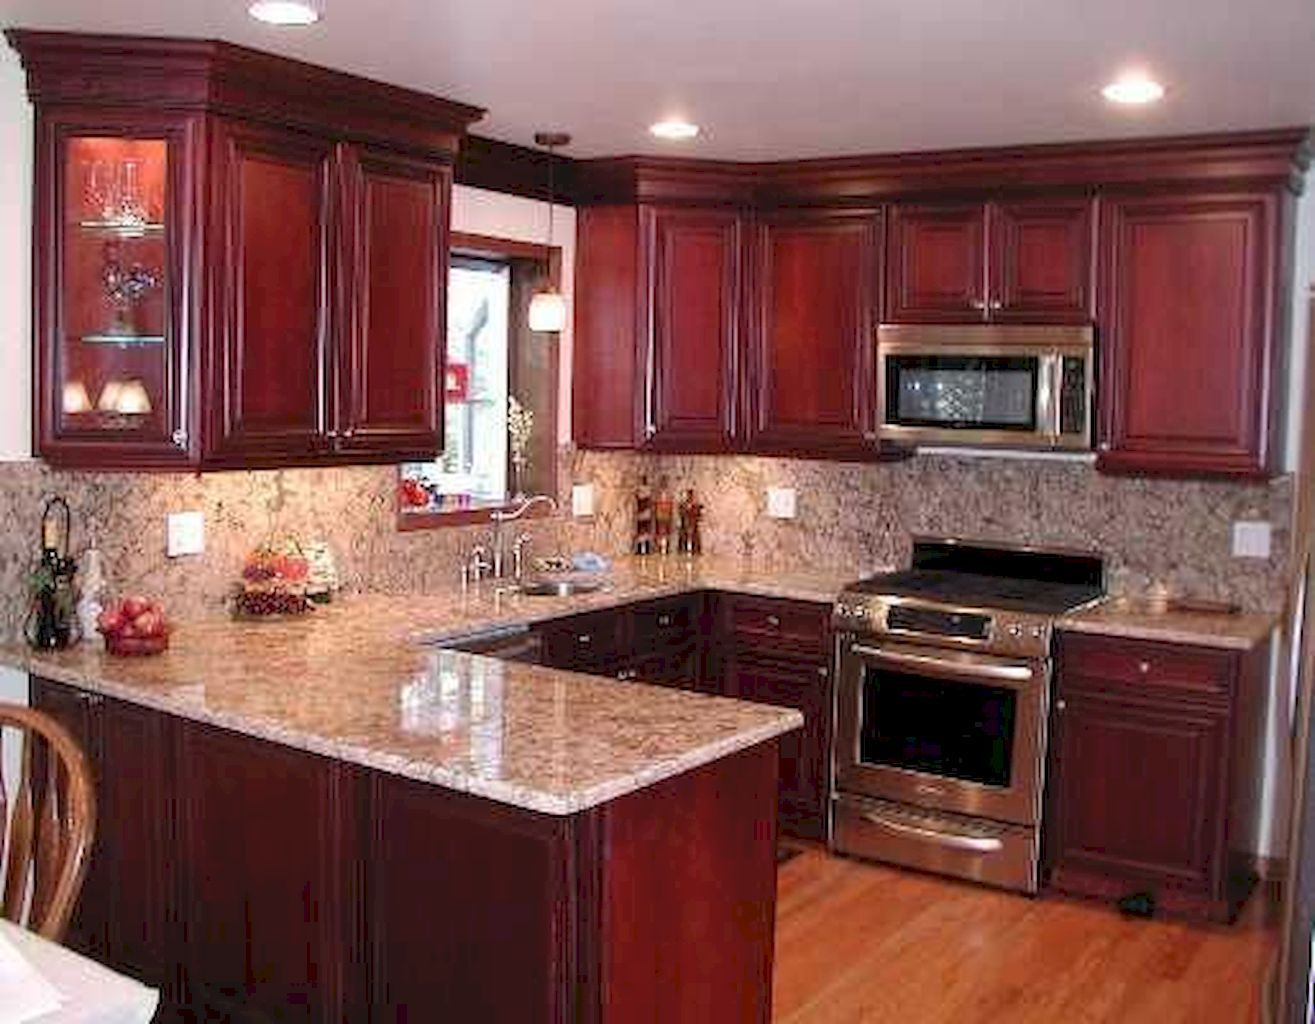 Wood Kitchen Cabinets An Investment to Awesome Kitchen Home to Z ...